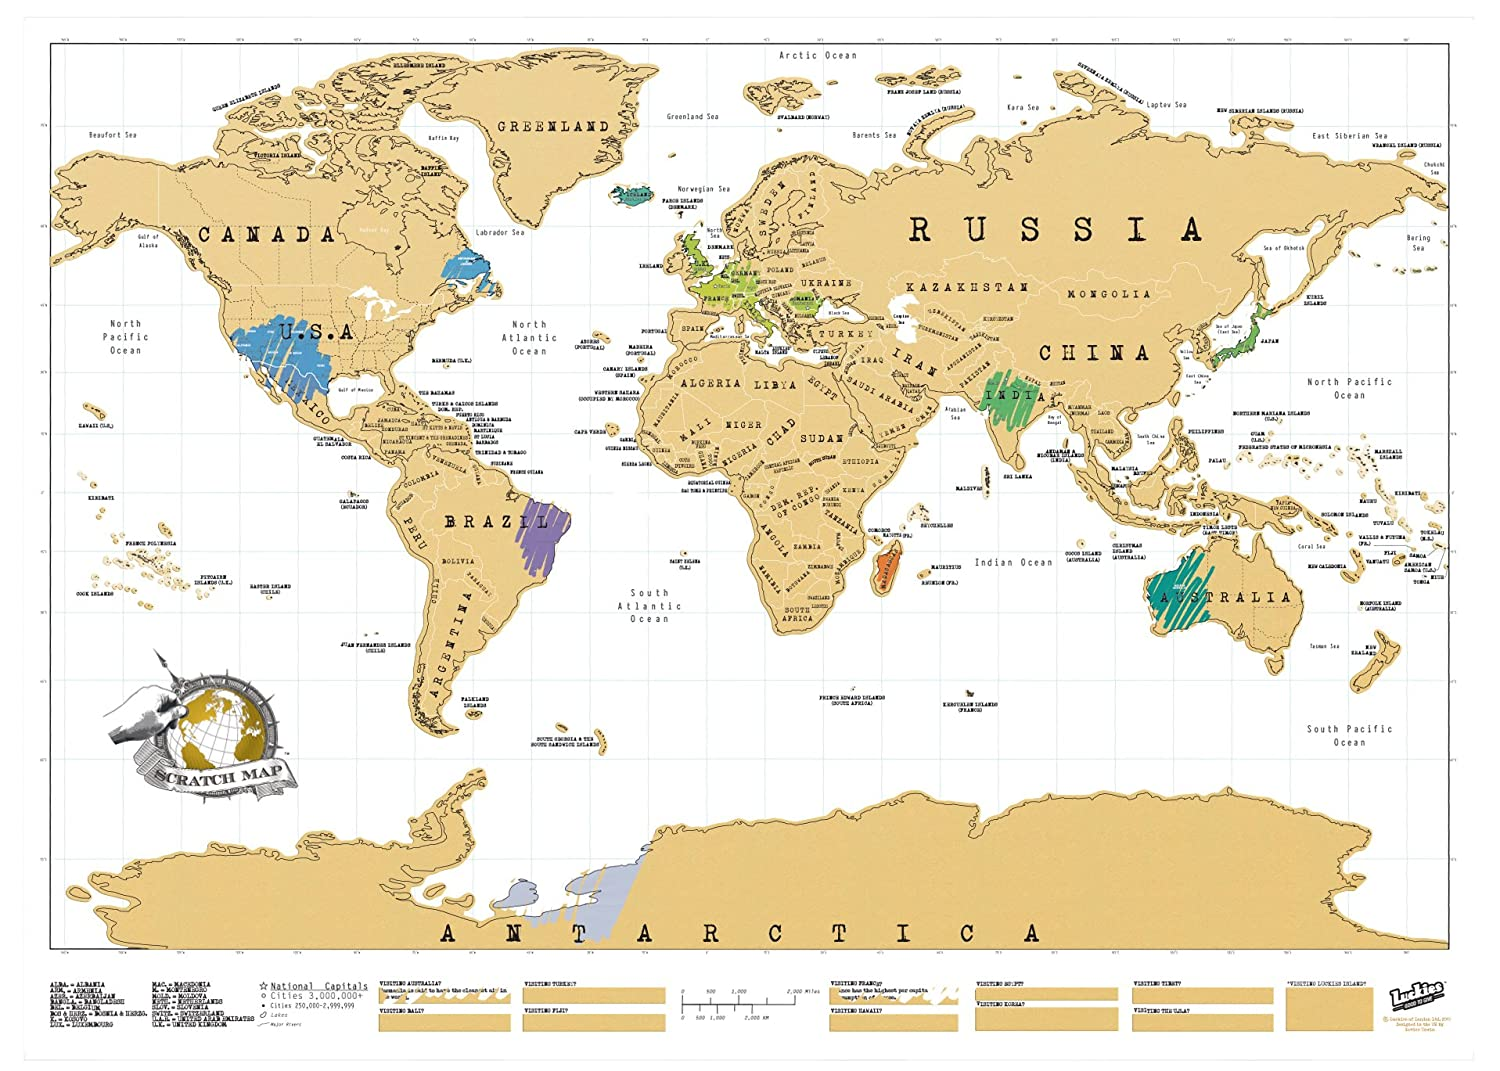 Scratch Map Original Personalised World Map By Luckies: Luckies Of London  Ltd: Amazon: Kitchen & Home